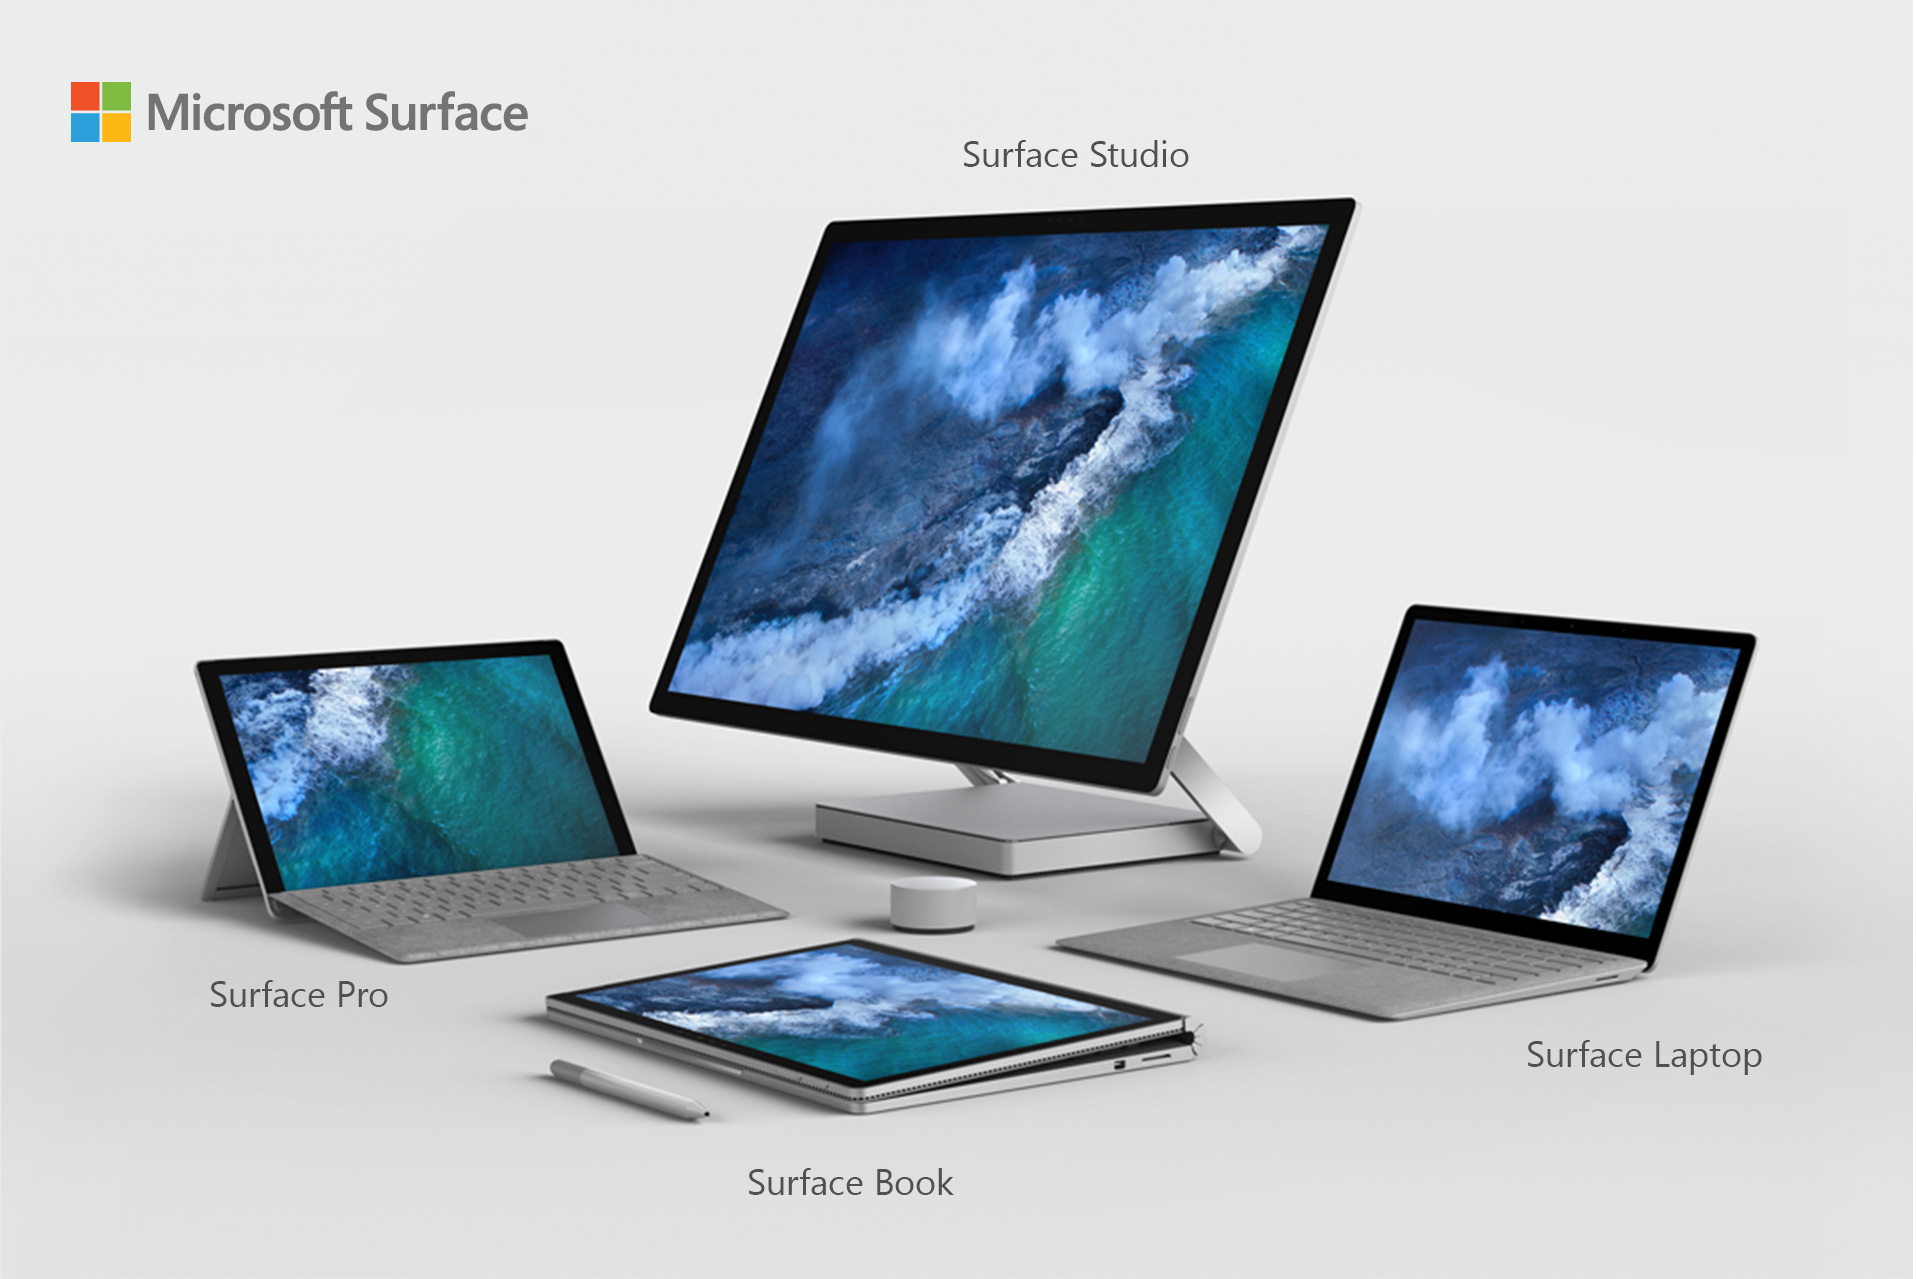 Microsoft Surface Family